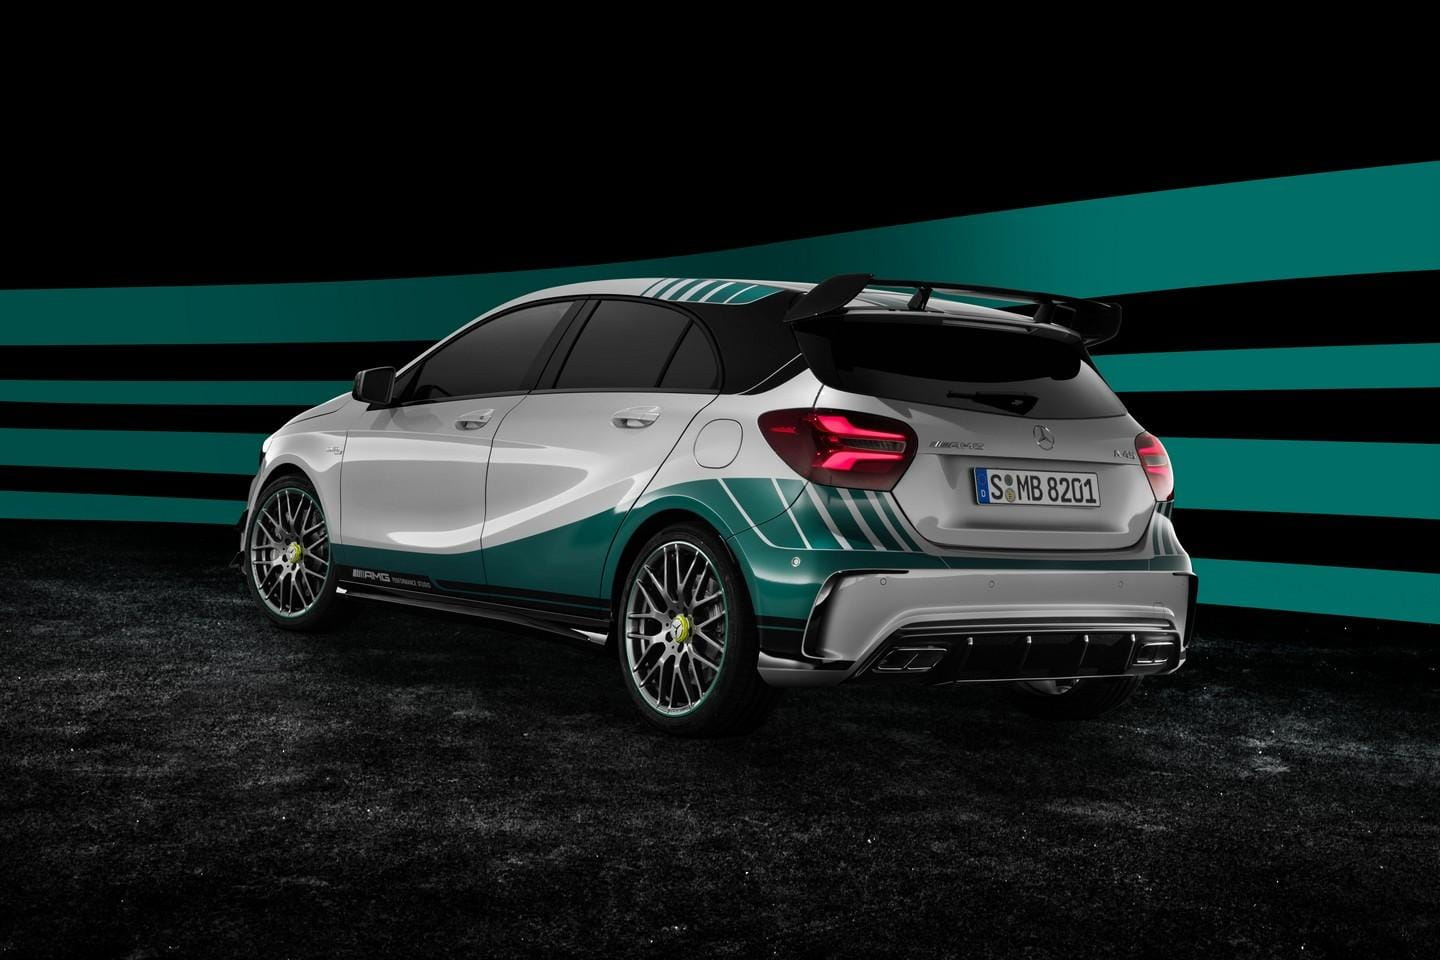 Mercedes_A45_AMG_petronas_2015_special_Edition_4